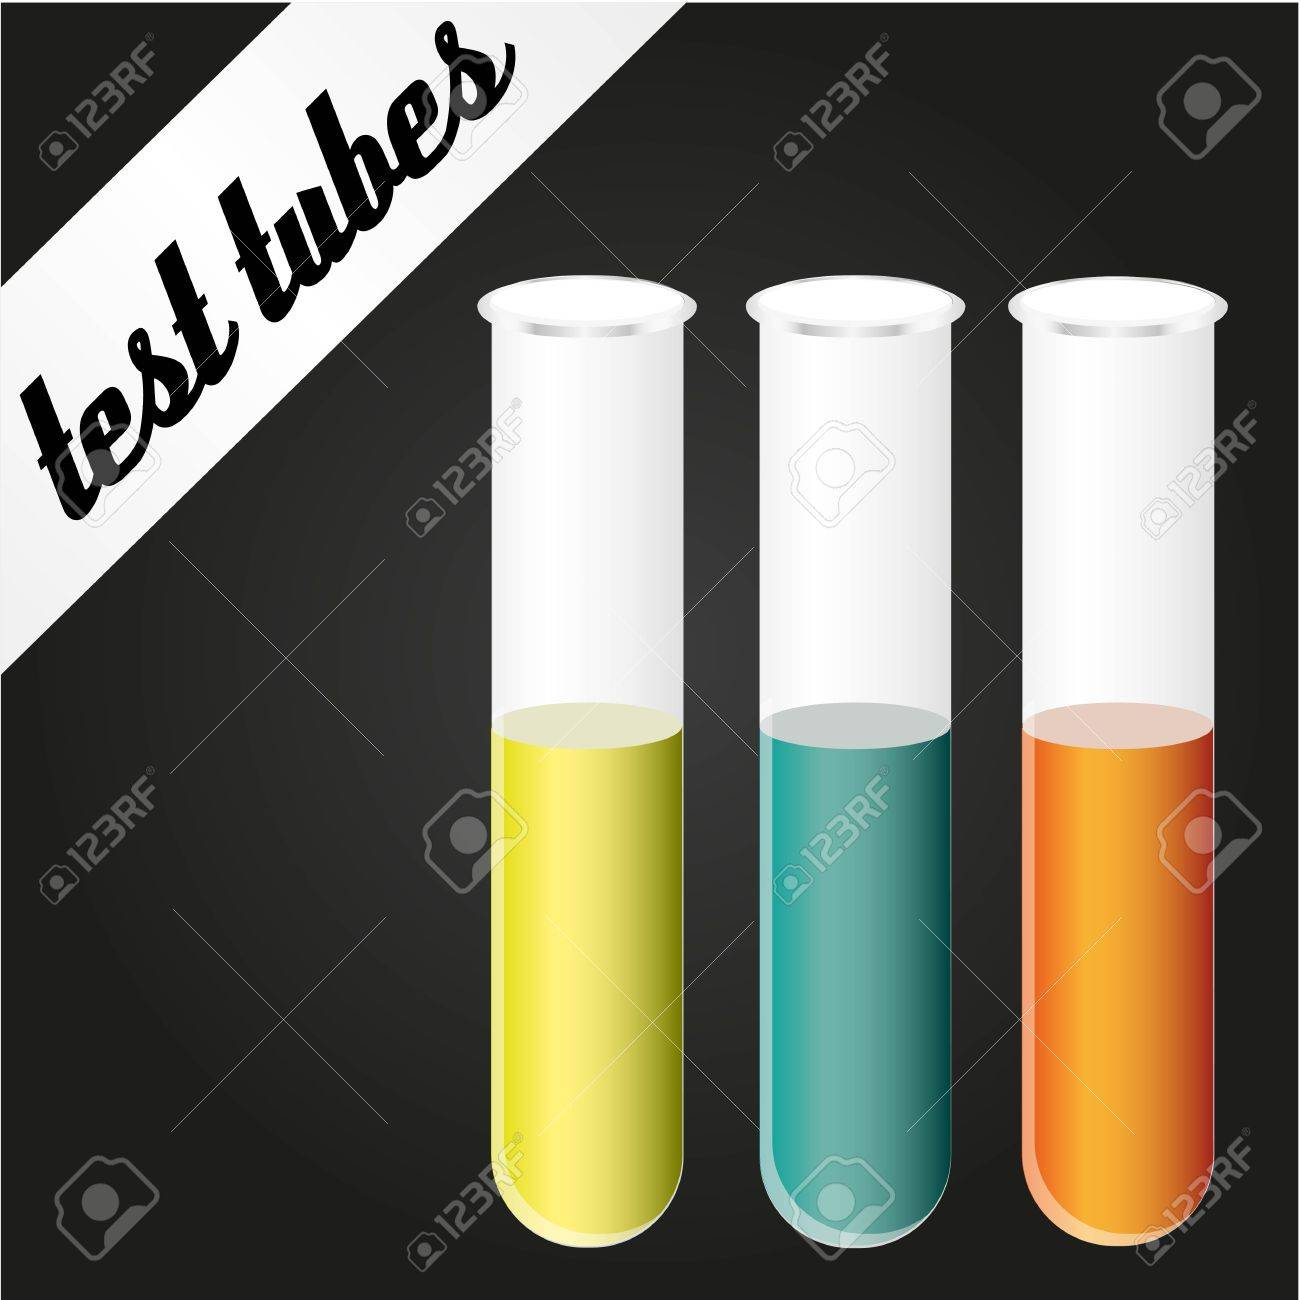 kit of basics test tubes over black background Stock Vector - 12756091